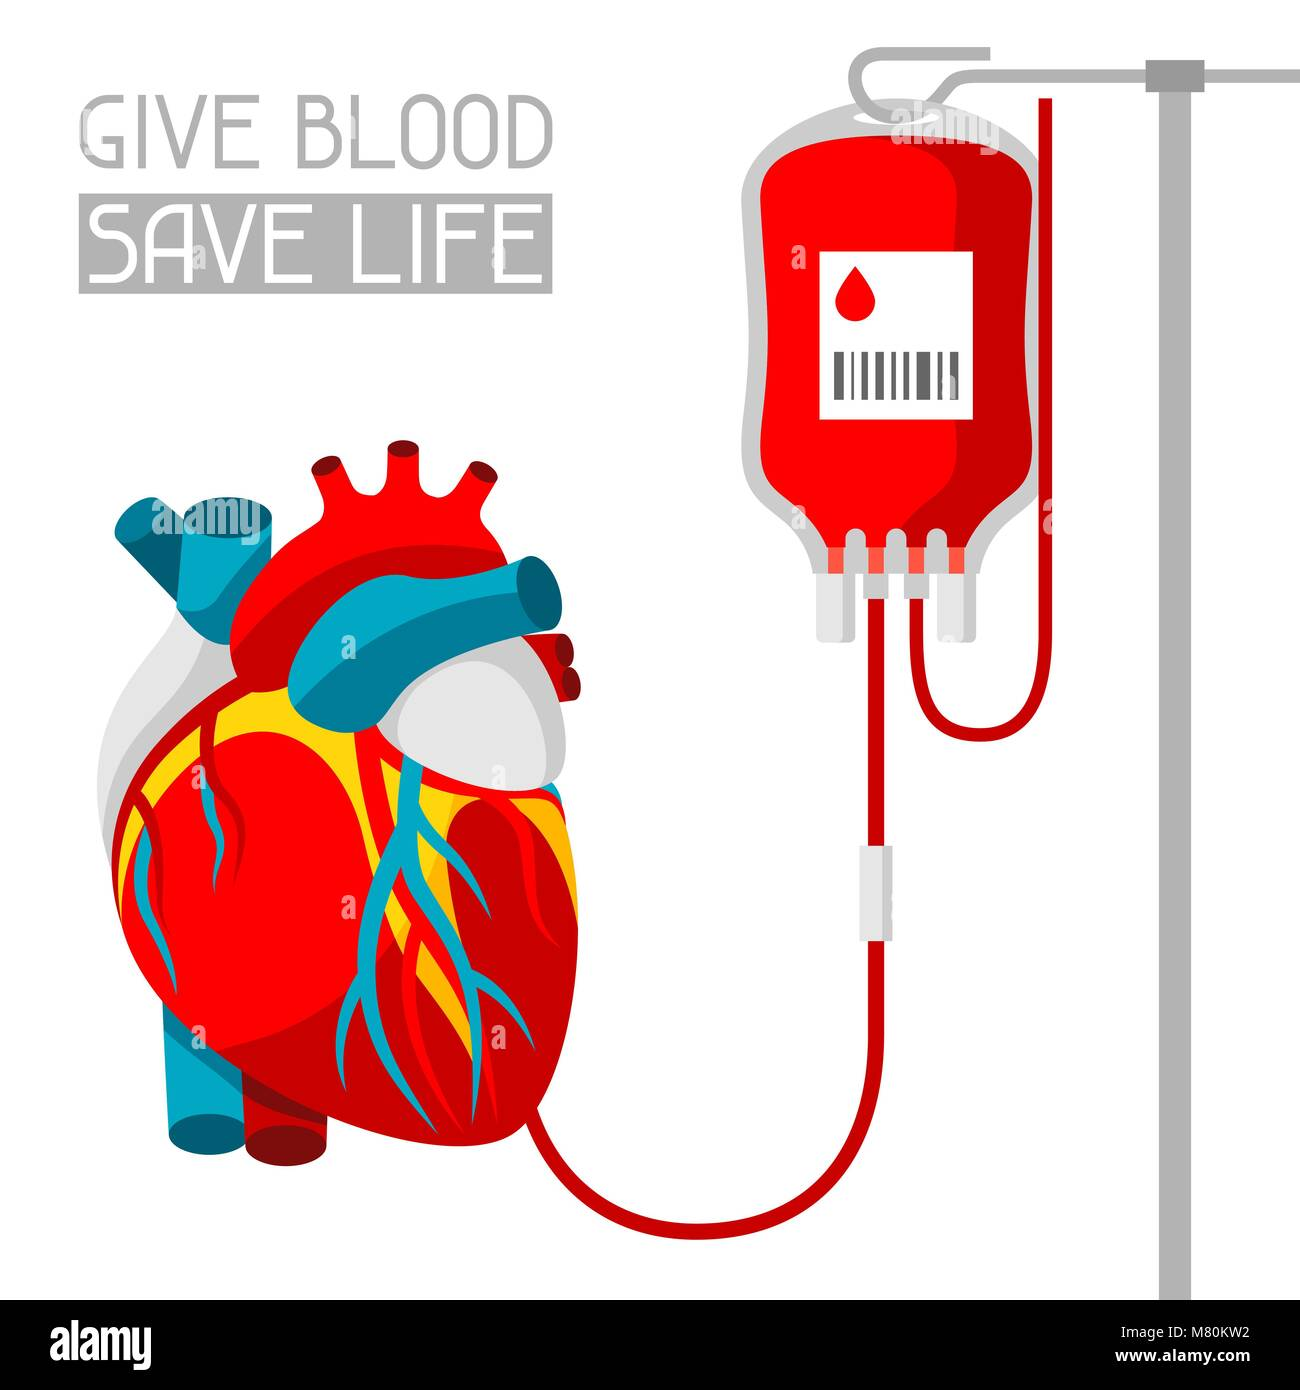 Donate blood. Medical and healthcare iIllustration of human heart - Stock Image